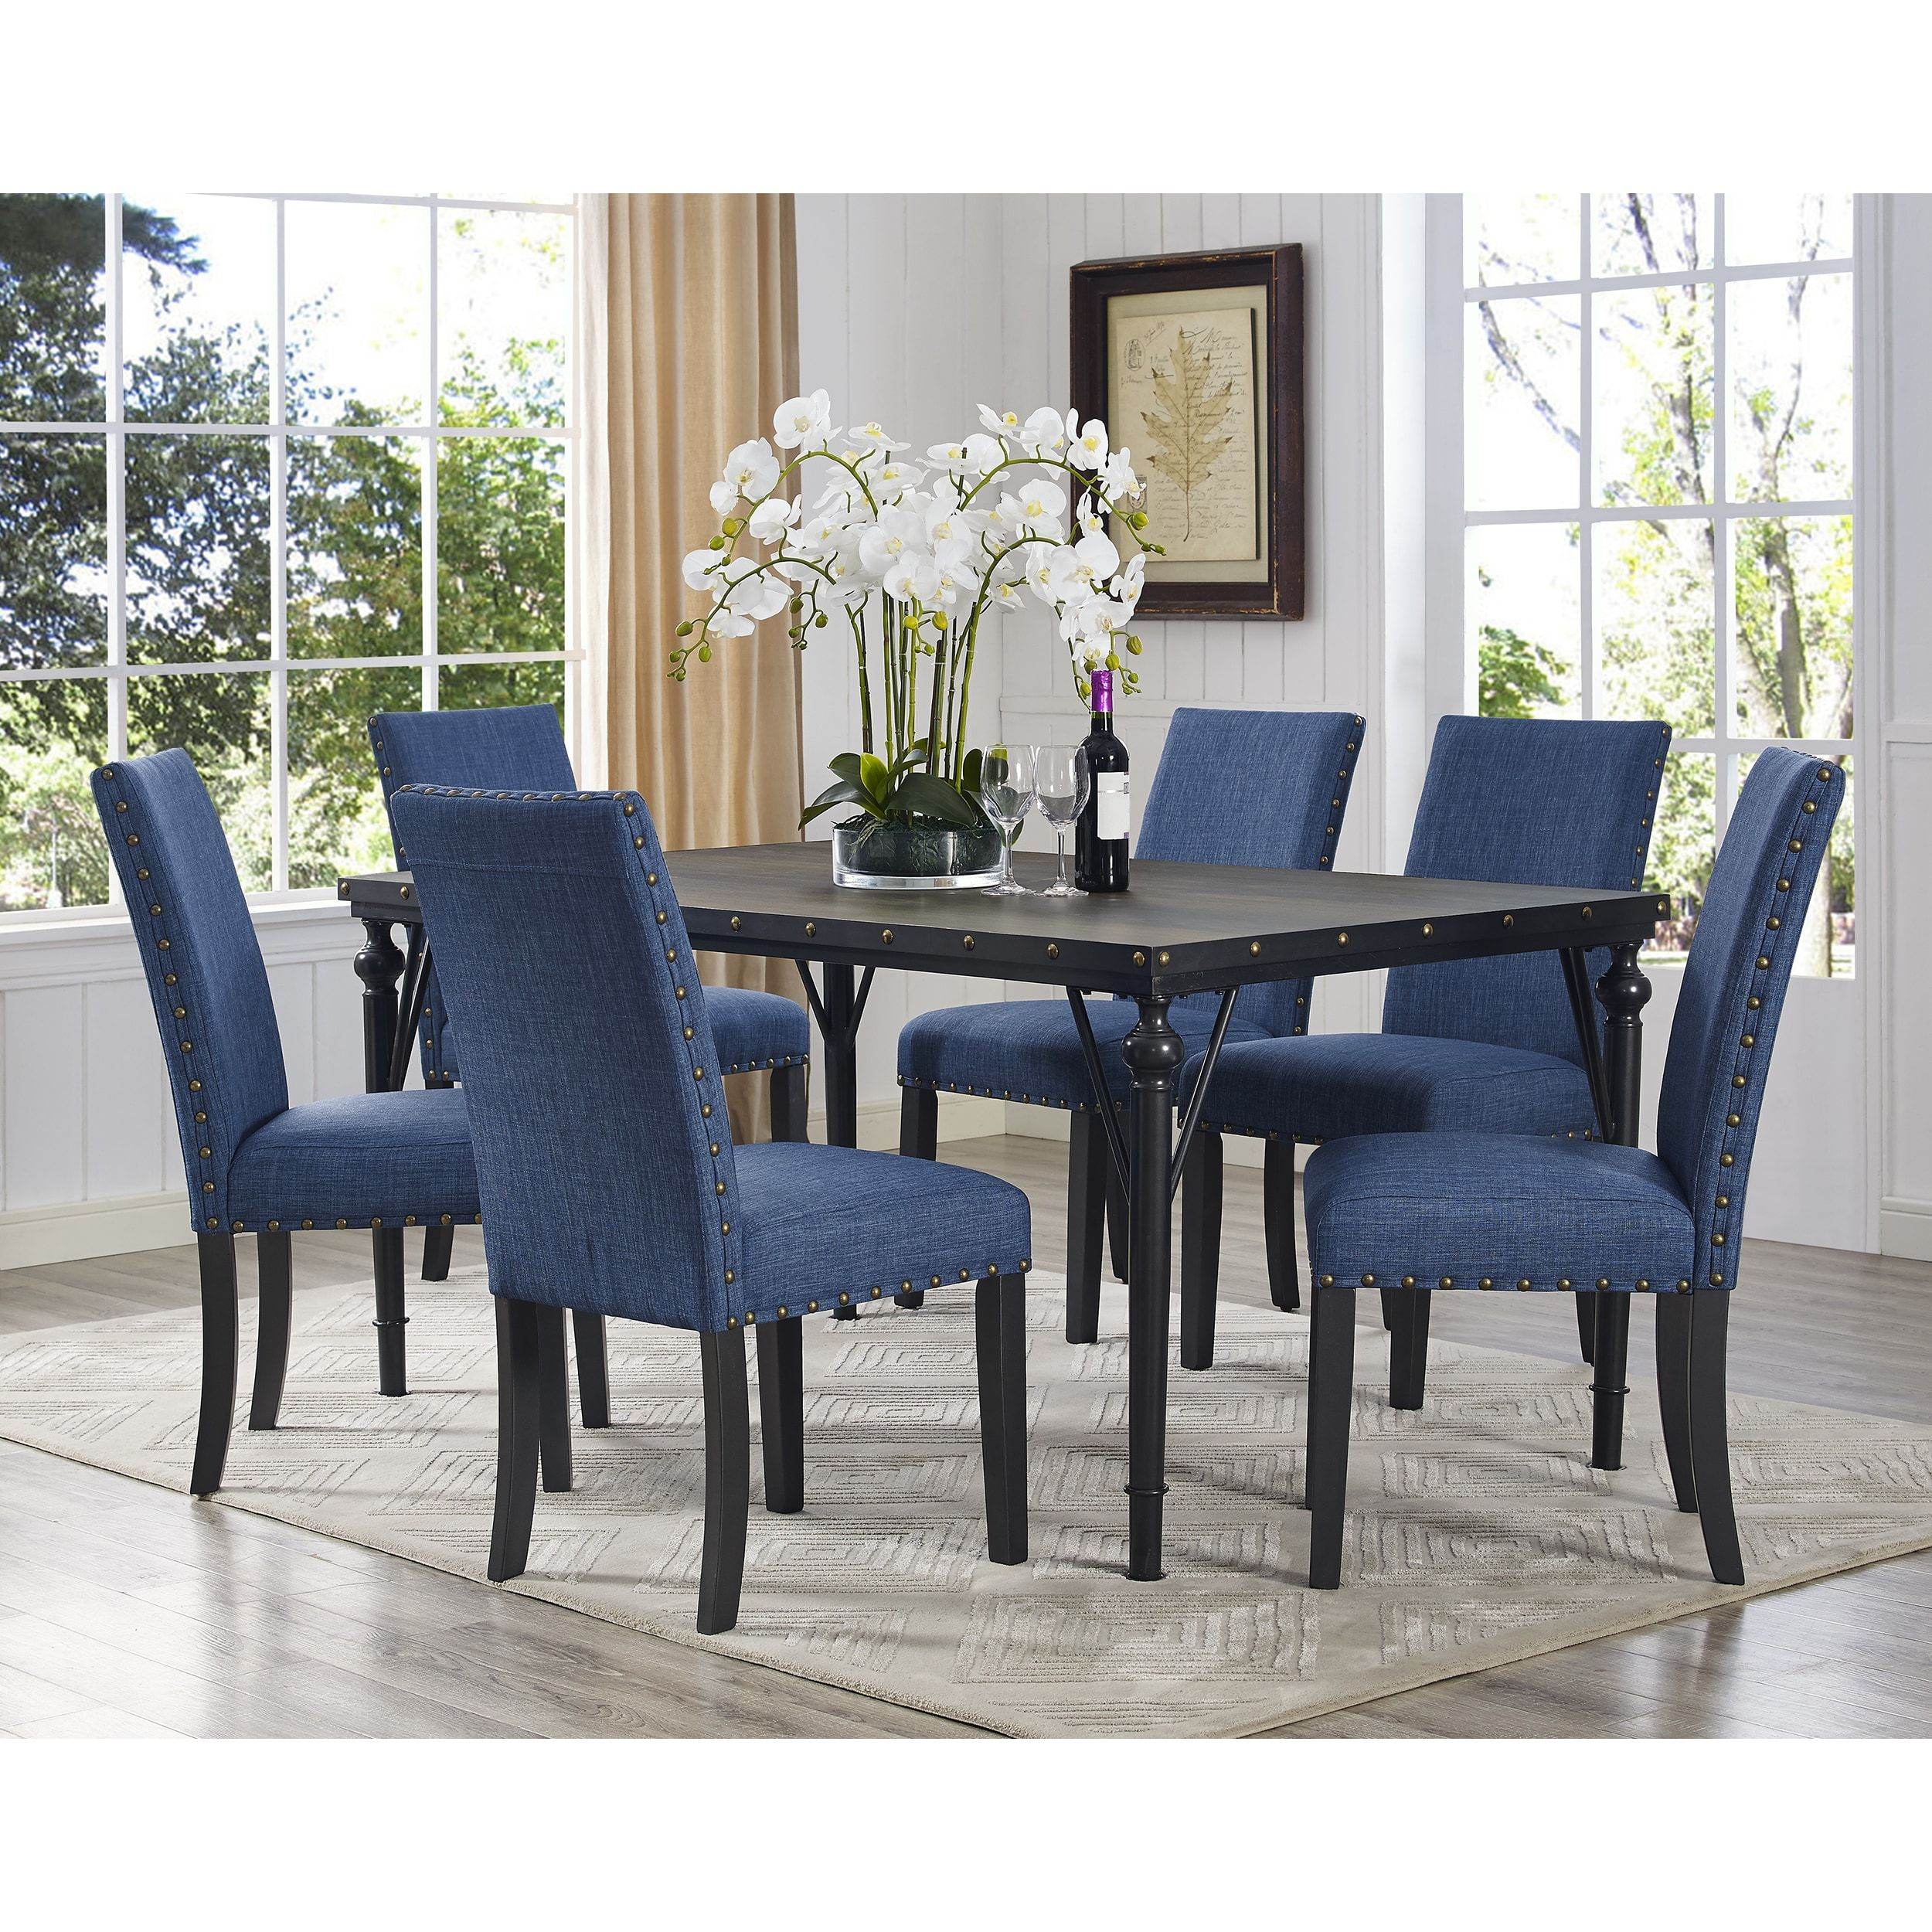 The Curated Nomad Arkin Espresso Wood 7 Piece Dining Set With